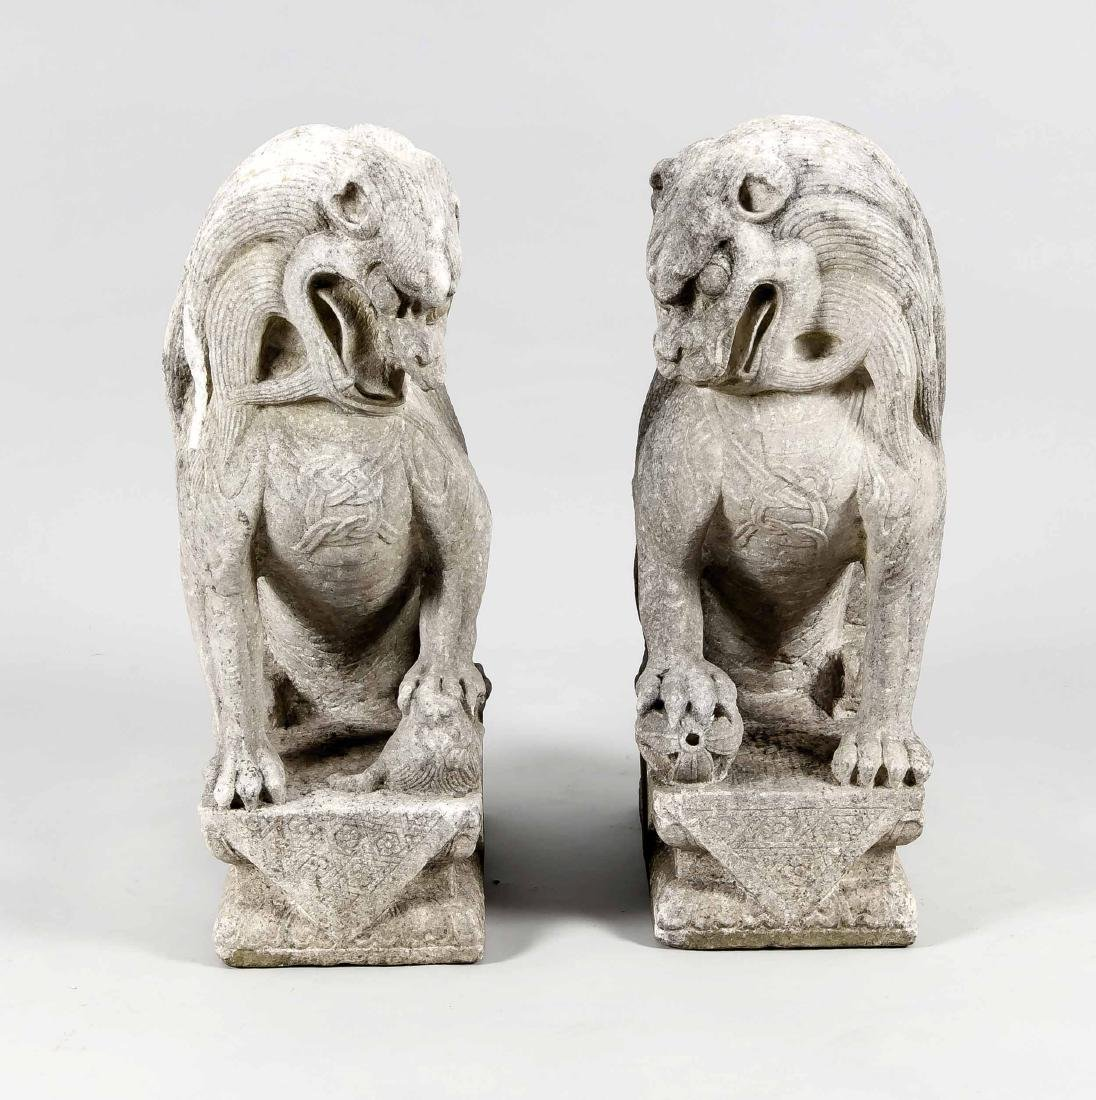 Pair of Foo-dogs, China, wohl 19th century, grey